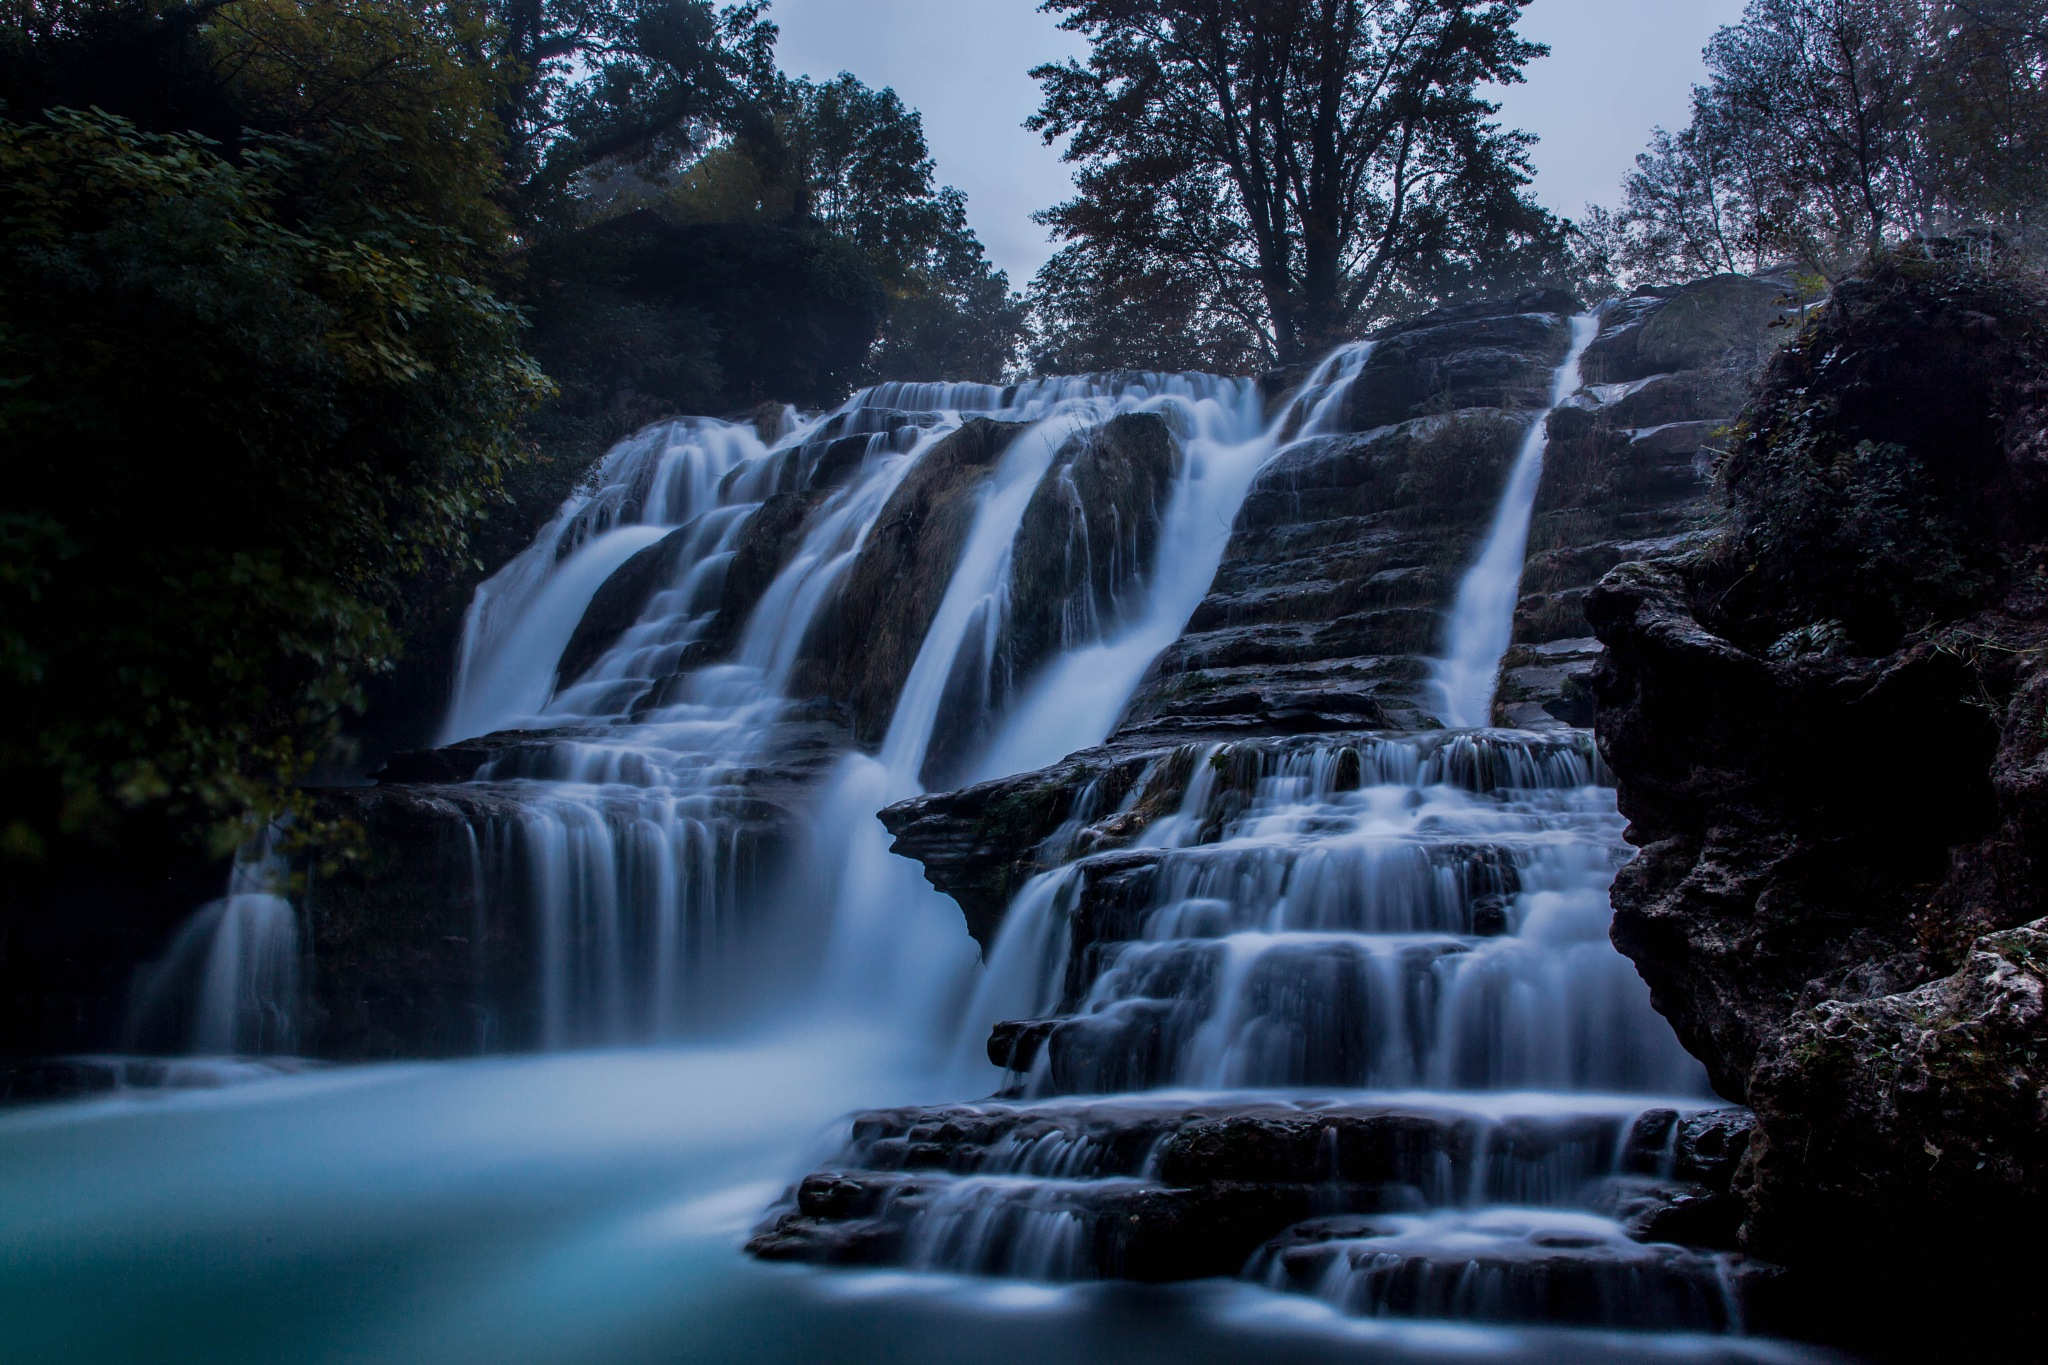 The WaterFalls by JustinGalant